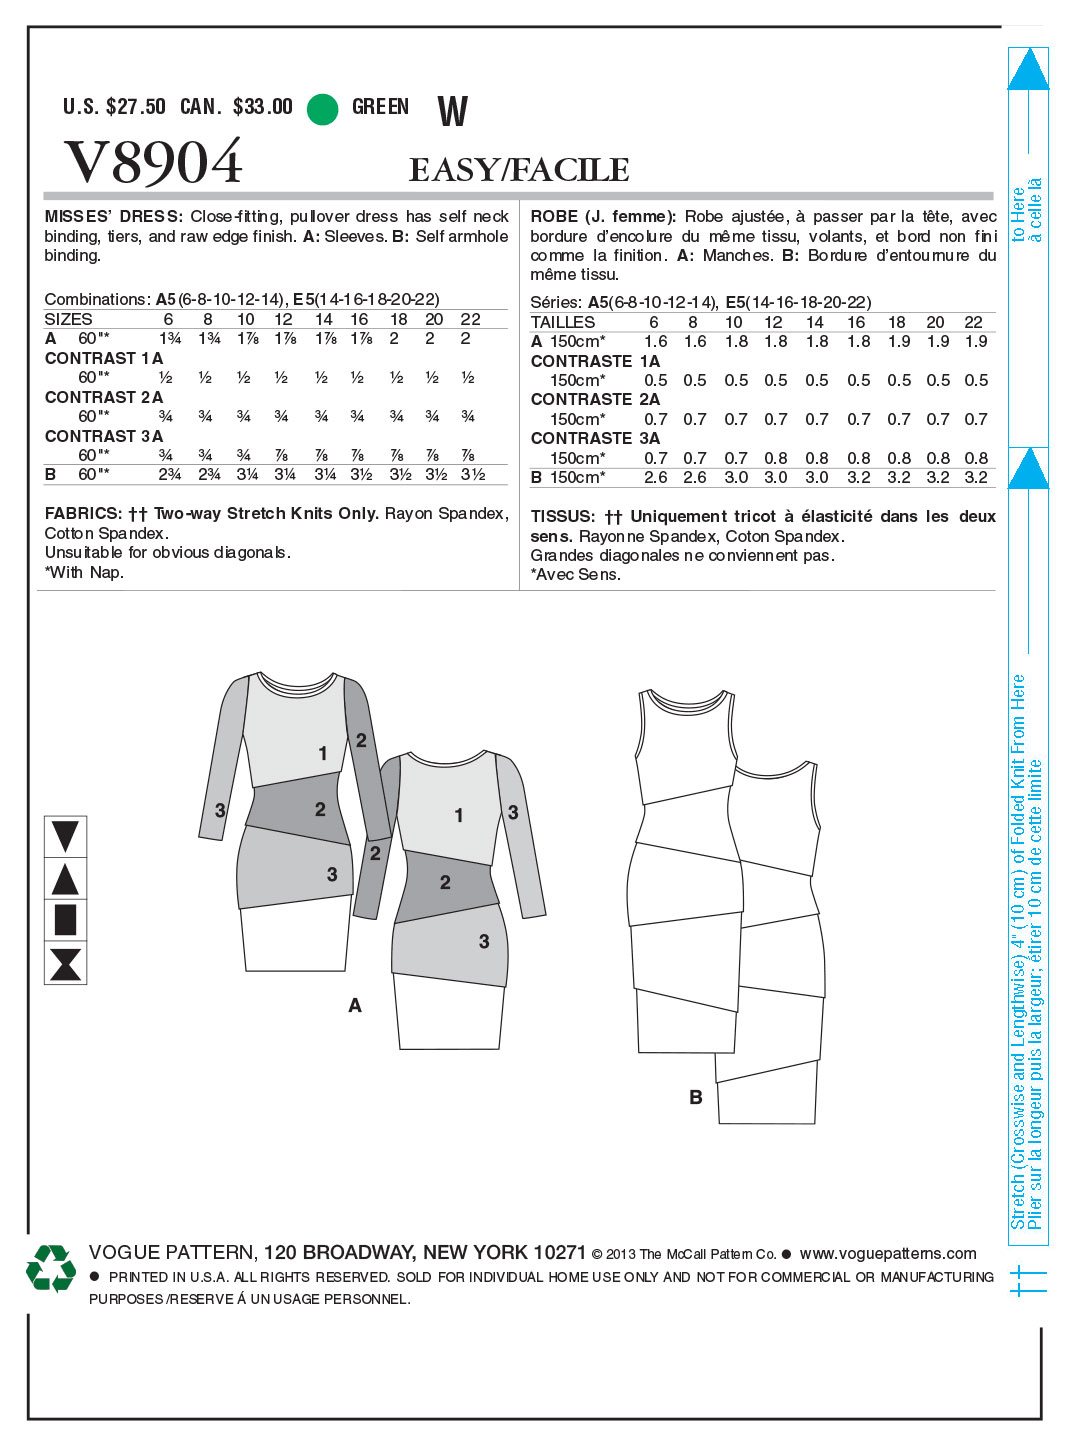 Vogue Patterns Misses Dress-V8904